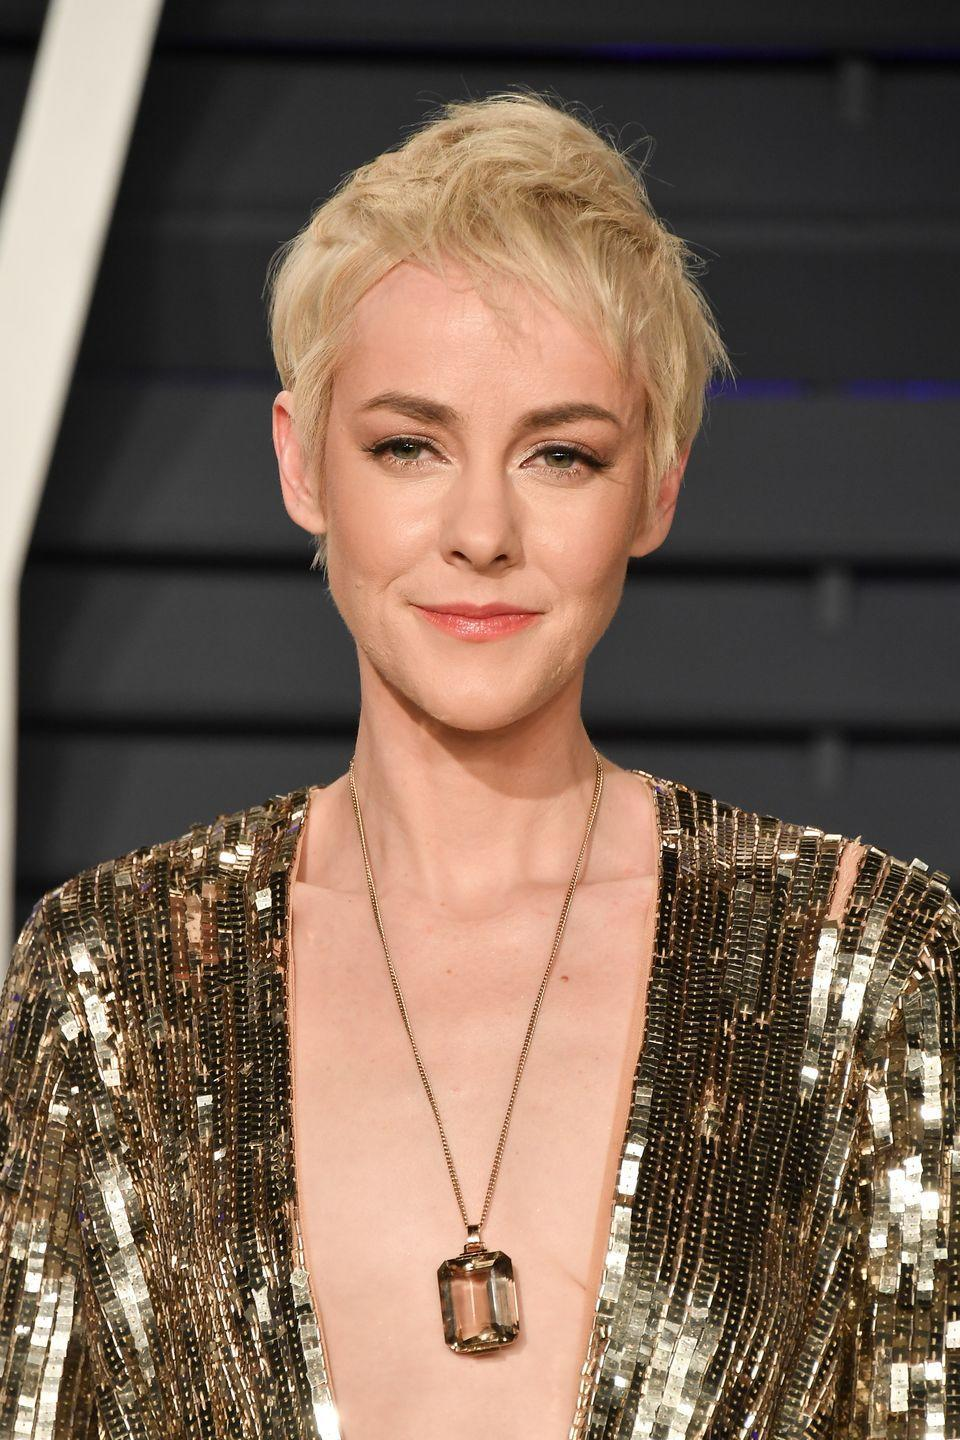 """<p>Fans of <em>The</em> <em>Hunger Games </em>actress were excited when it was announced she'd appear in <em>Batman v Superman</em><em>, </em>but when the film premiered, she was nowhere to be found. Thanks to an <a href=""""https://www.indiewire.com/2016/06/jena-malone-batman-v-superman-role-ultimate-edition-credits-dc-jenet-klyburn-1201689627/"""" rel=""""nofollow noopener"""" target=""""_blank"""" data-ylk=""""slk:extended release of the film"""" class=""""link rapid-noclick-resp"""">extended release of the film</a>, we are able to catch a glimpse of Malone's scenes as a scientist, but the actress was cut from the theatrical film. </p>"""